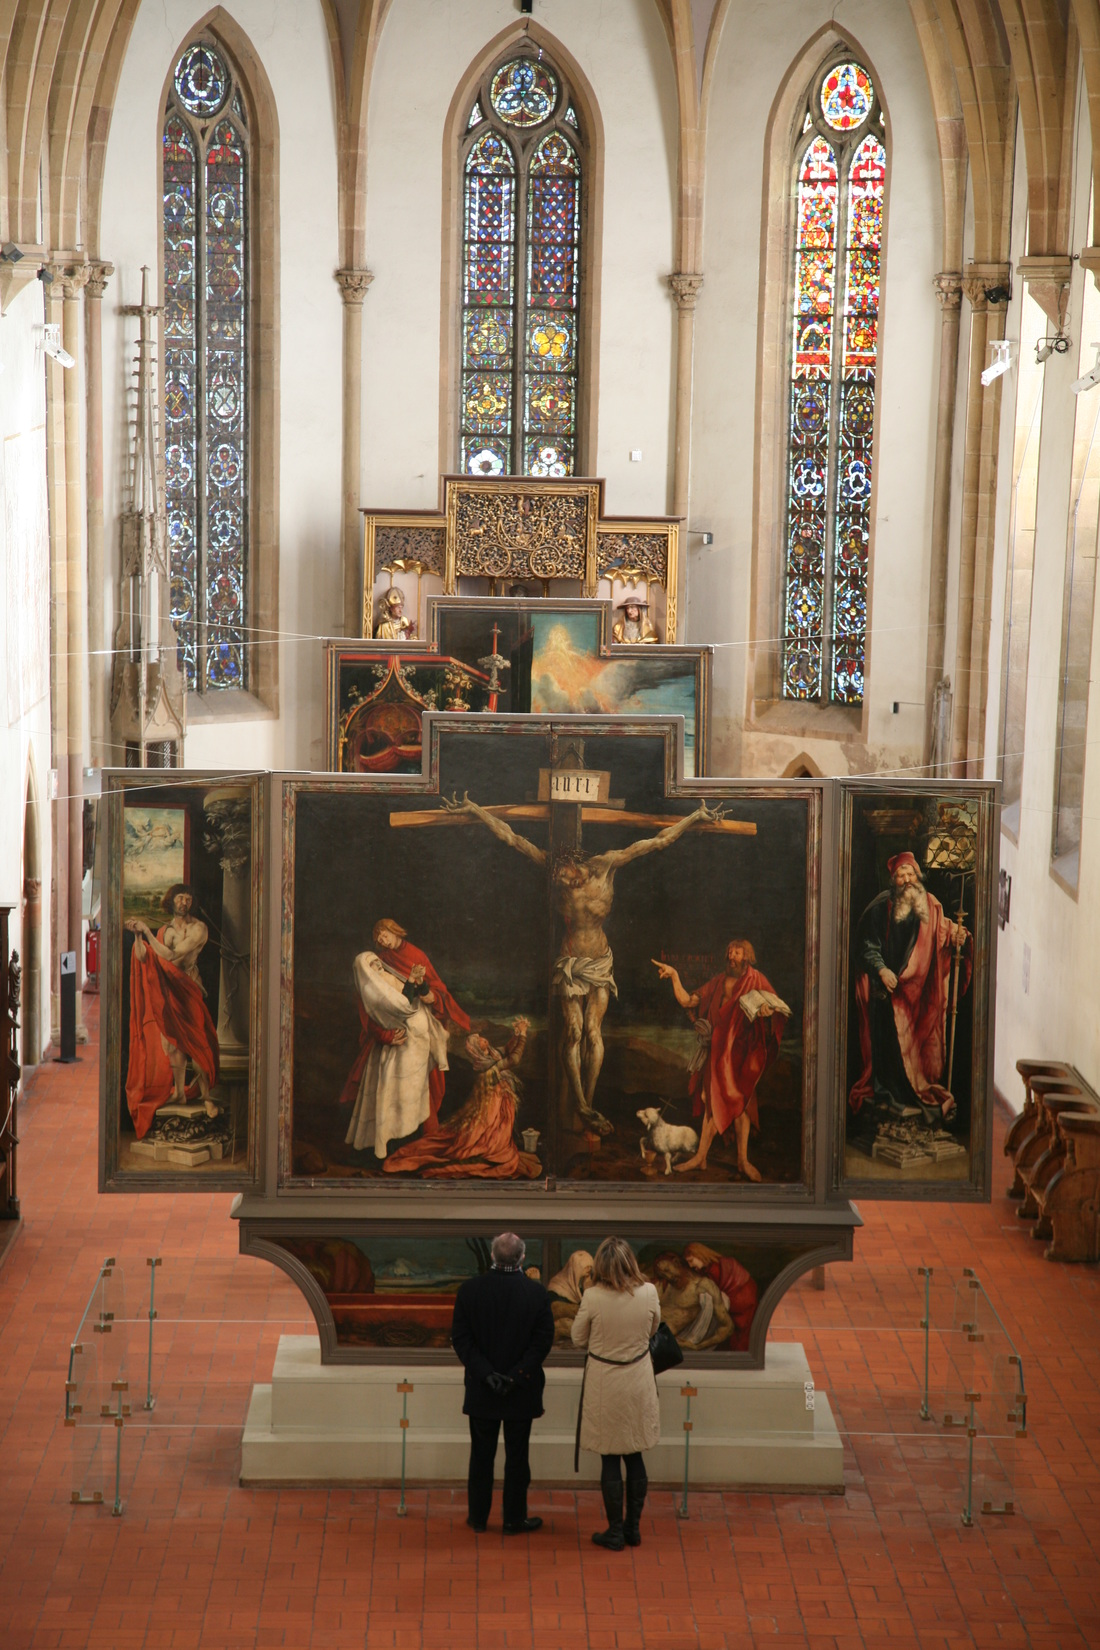 View of the Isenheim Altarpiece, Nikolaus Hagenauer and Matthias Grünewald, c 1512-1516